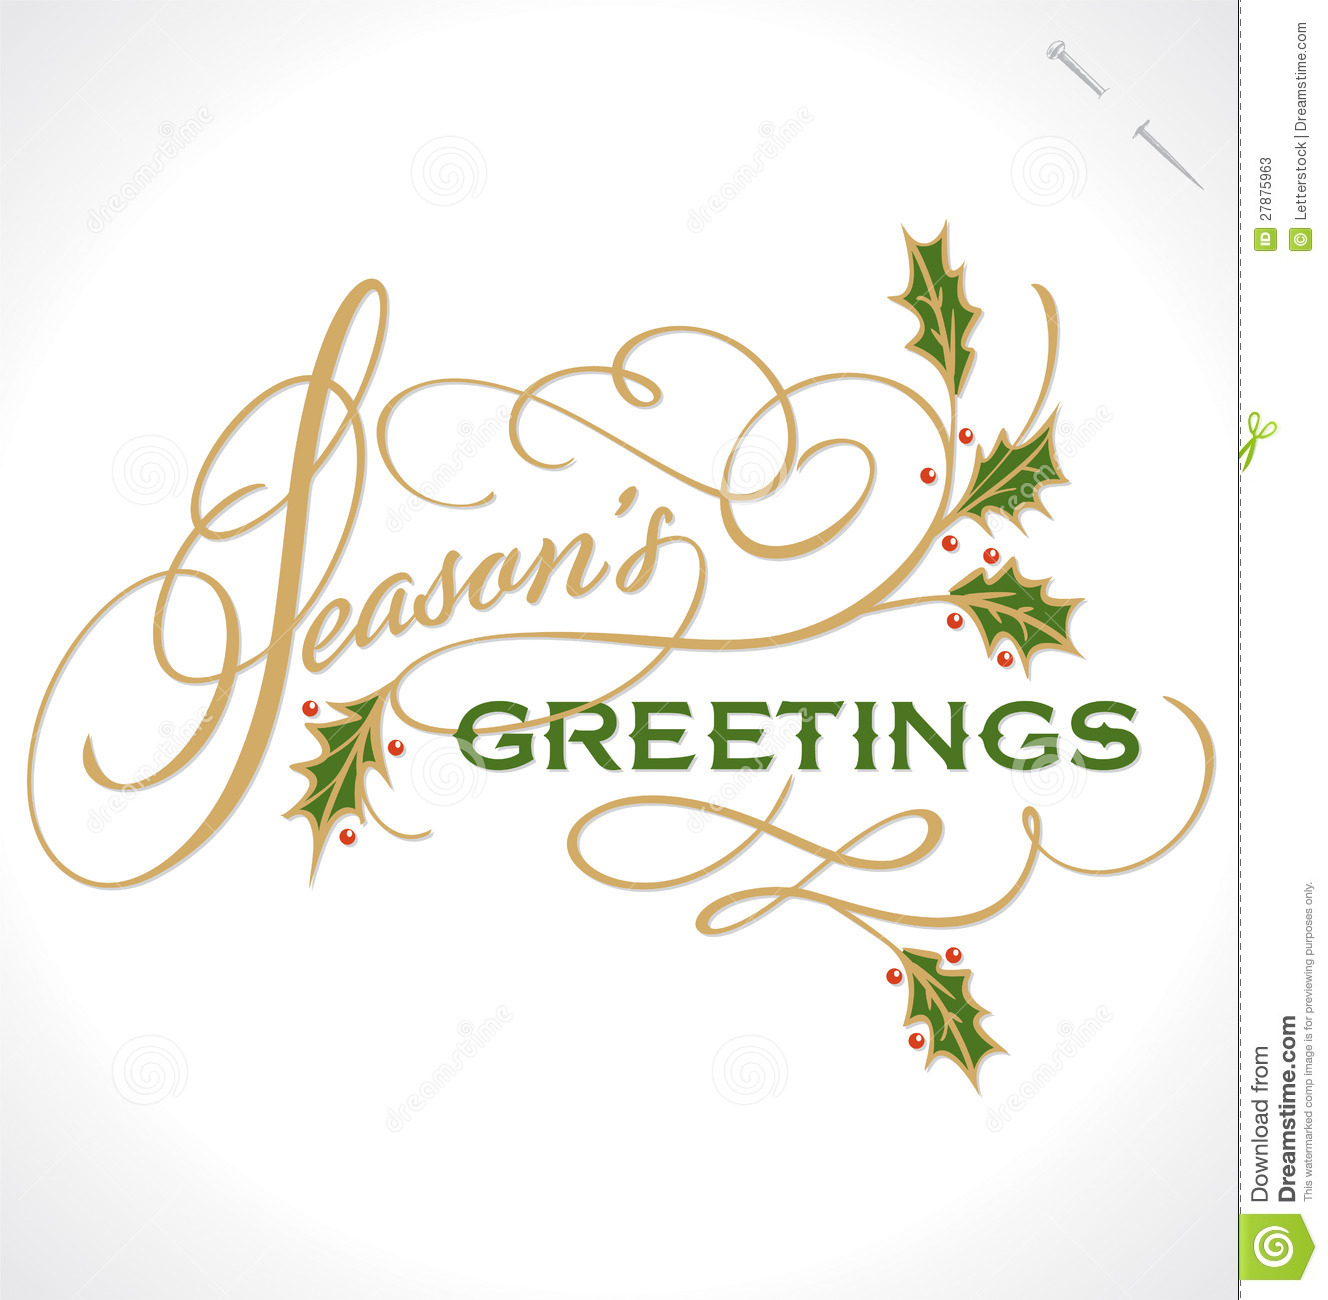 Seasons greetings hand lettering vector stock vector seasons greetings hand lettering vector font banner m4hsunfo